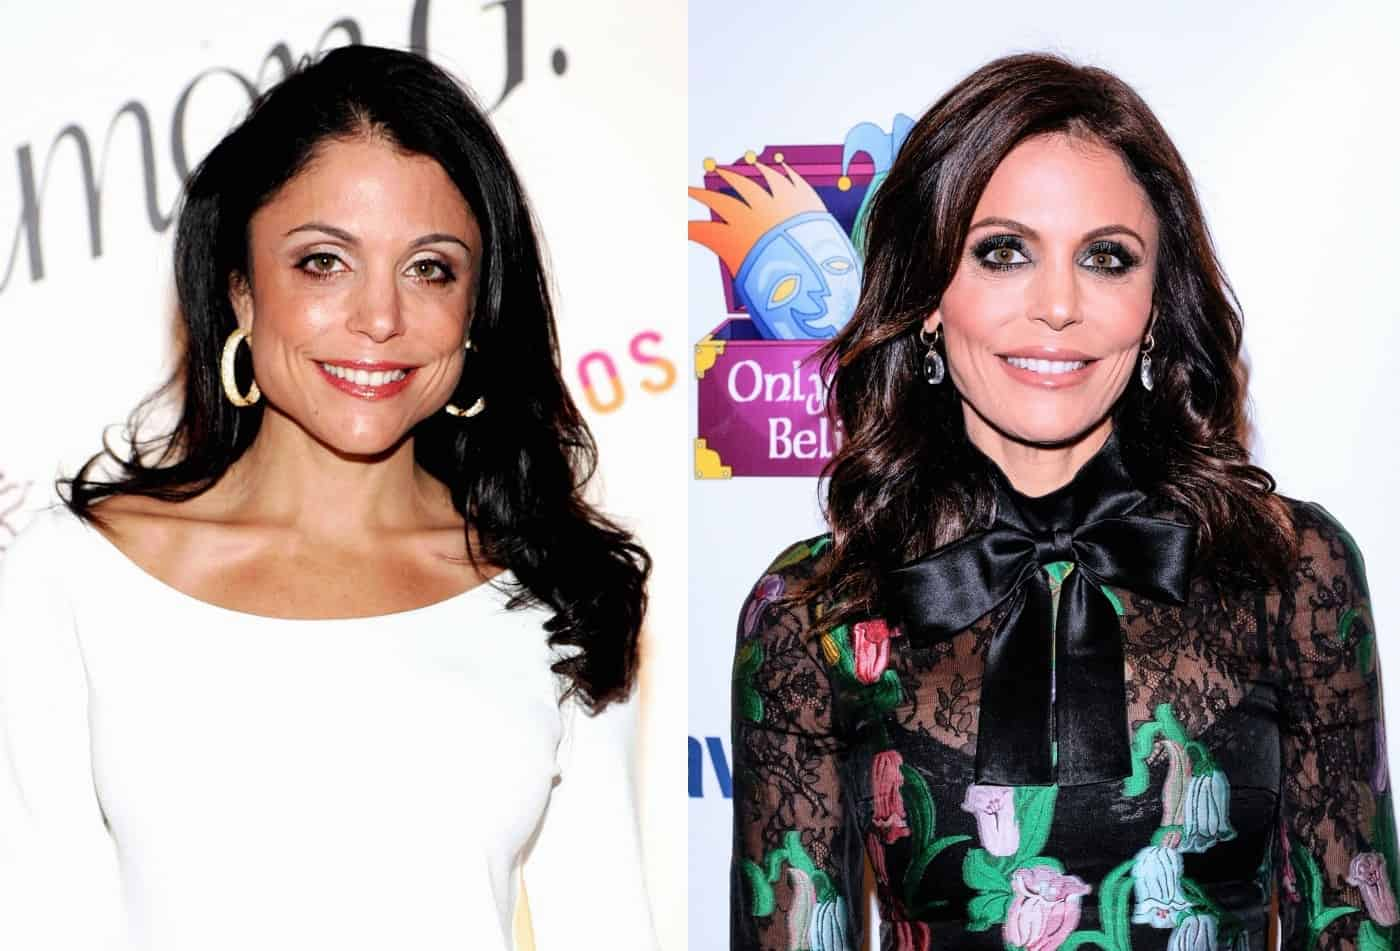 Bethenny Frankel Plastic Surgery Before and After Pictures